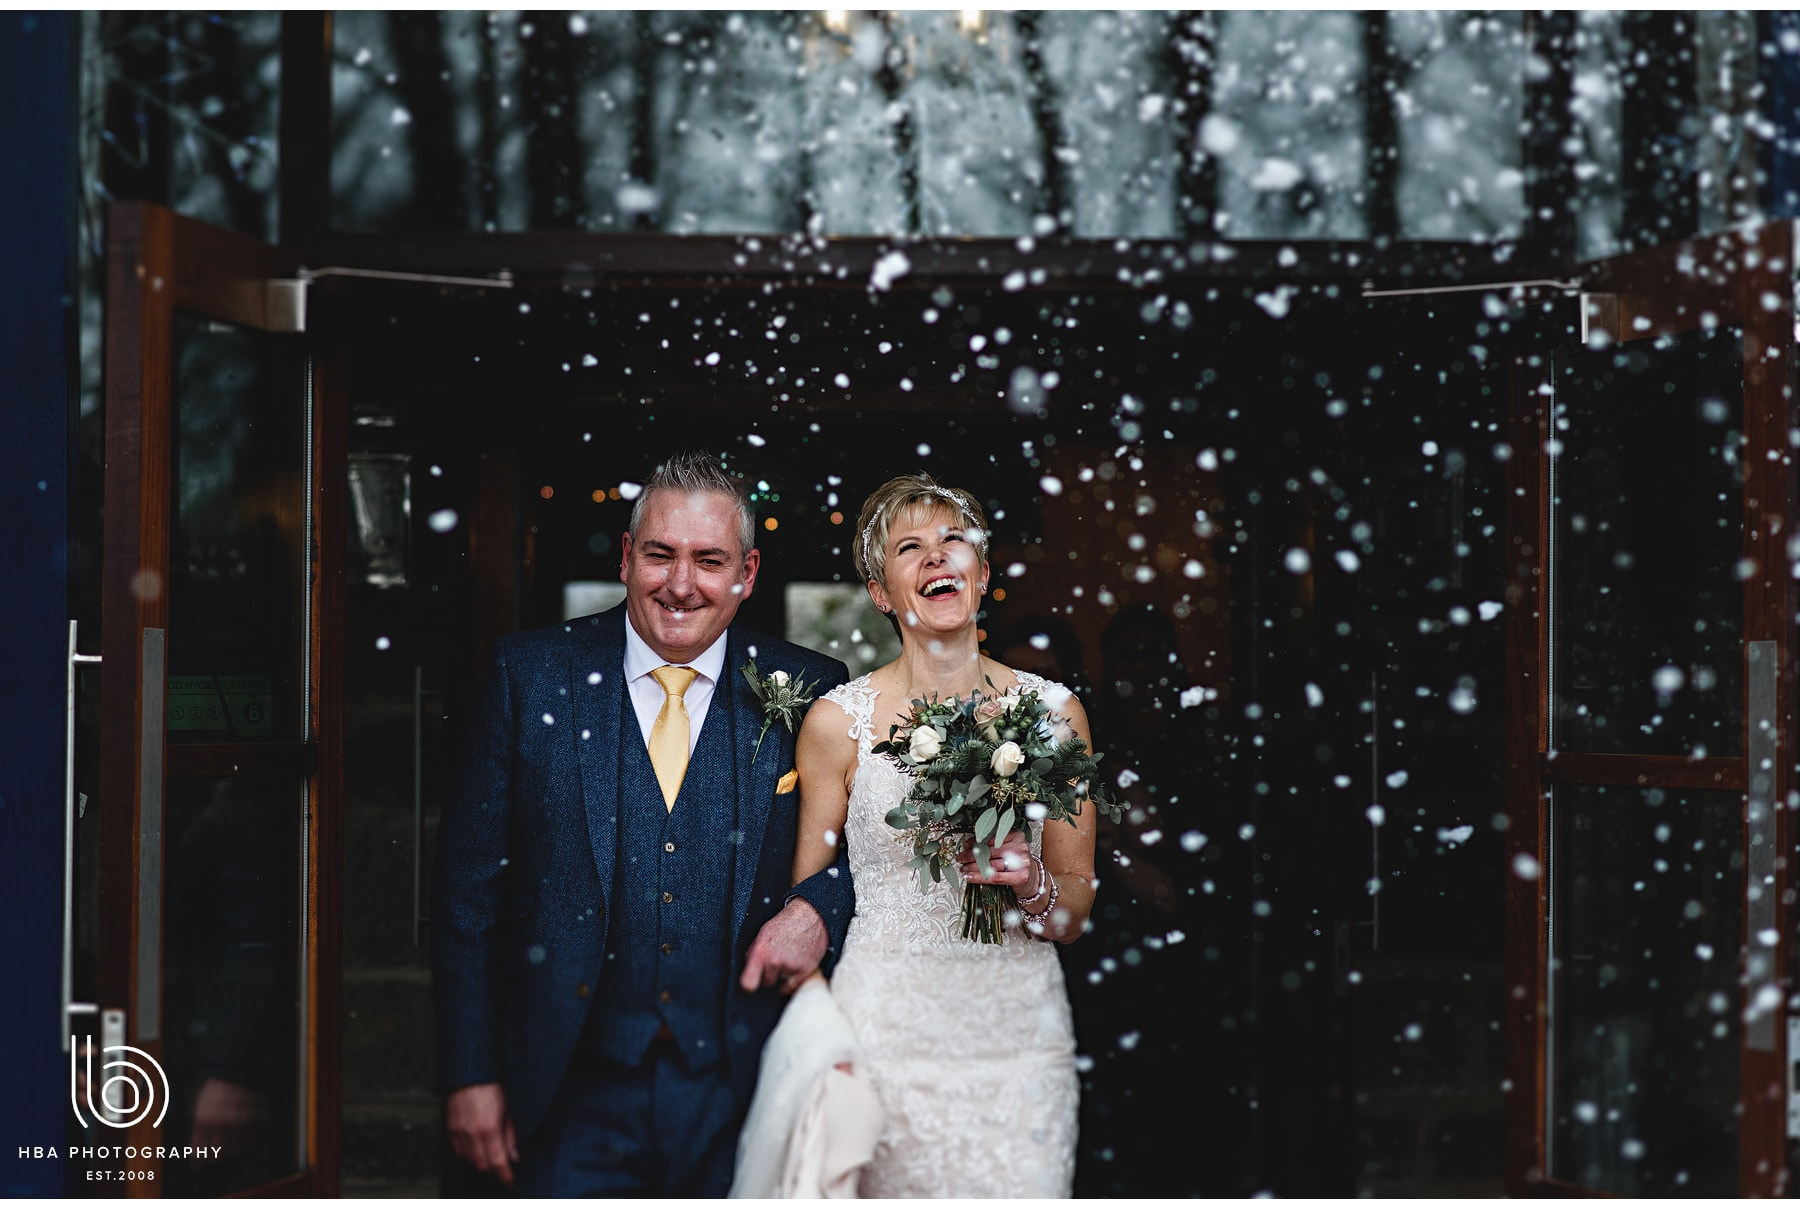 the bride & groom getting covered in snow